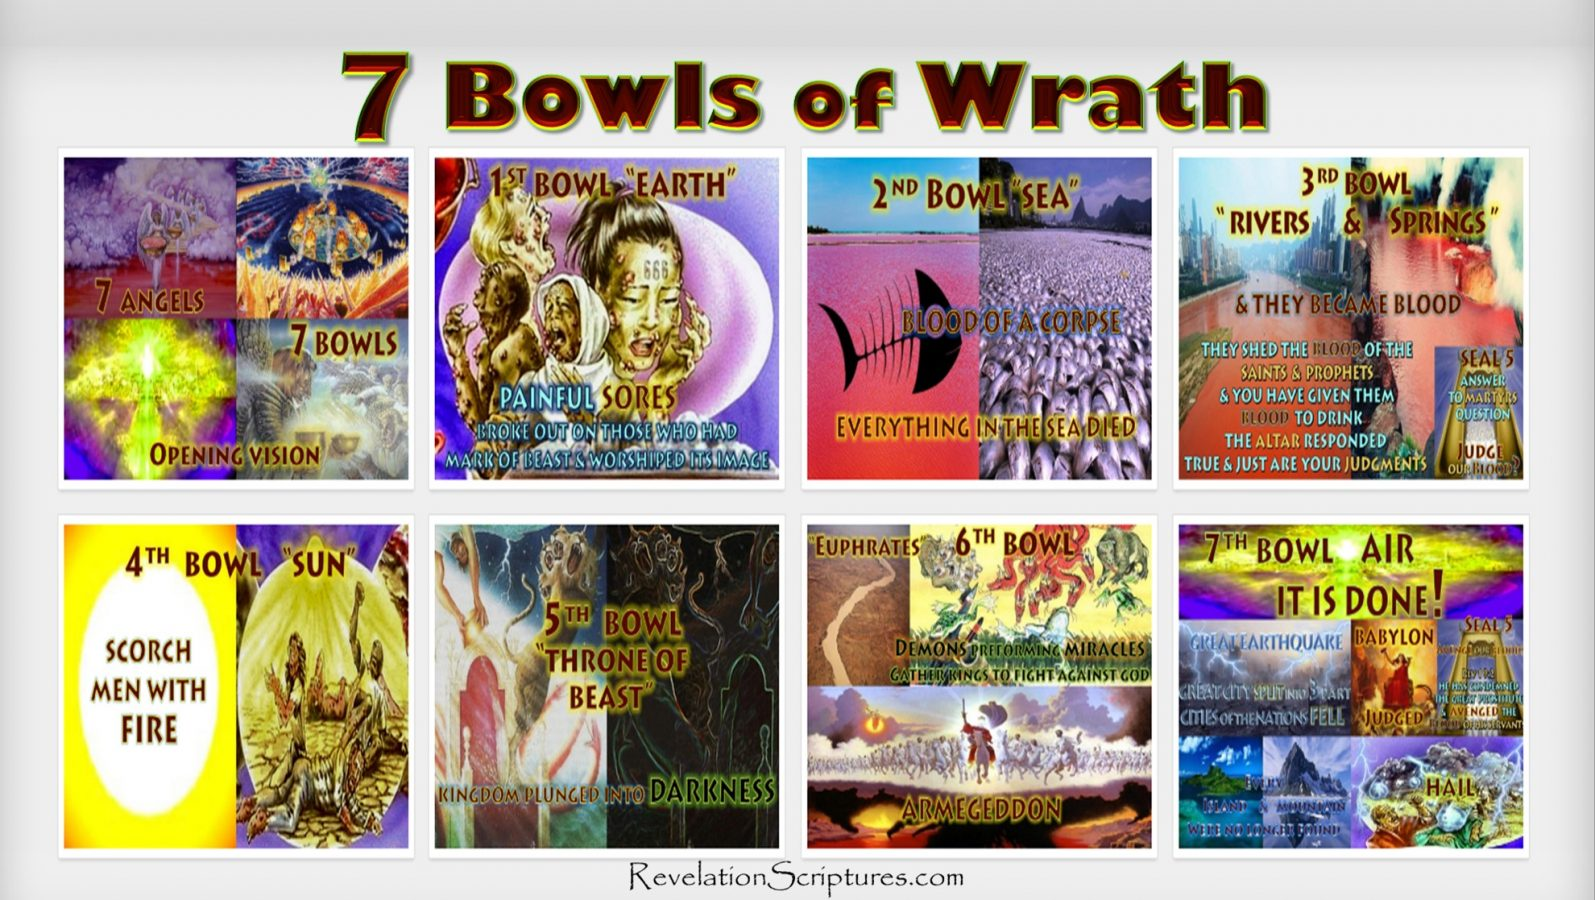 7-Bowls-of-Wrath-in-the-Book-of-Revelation-The-Big-Picture-e1582184105946